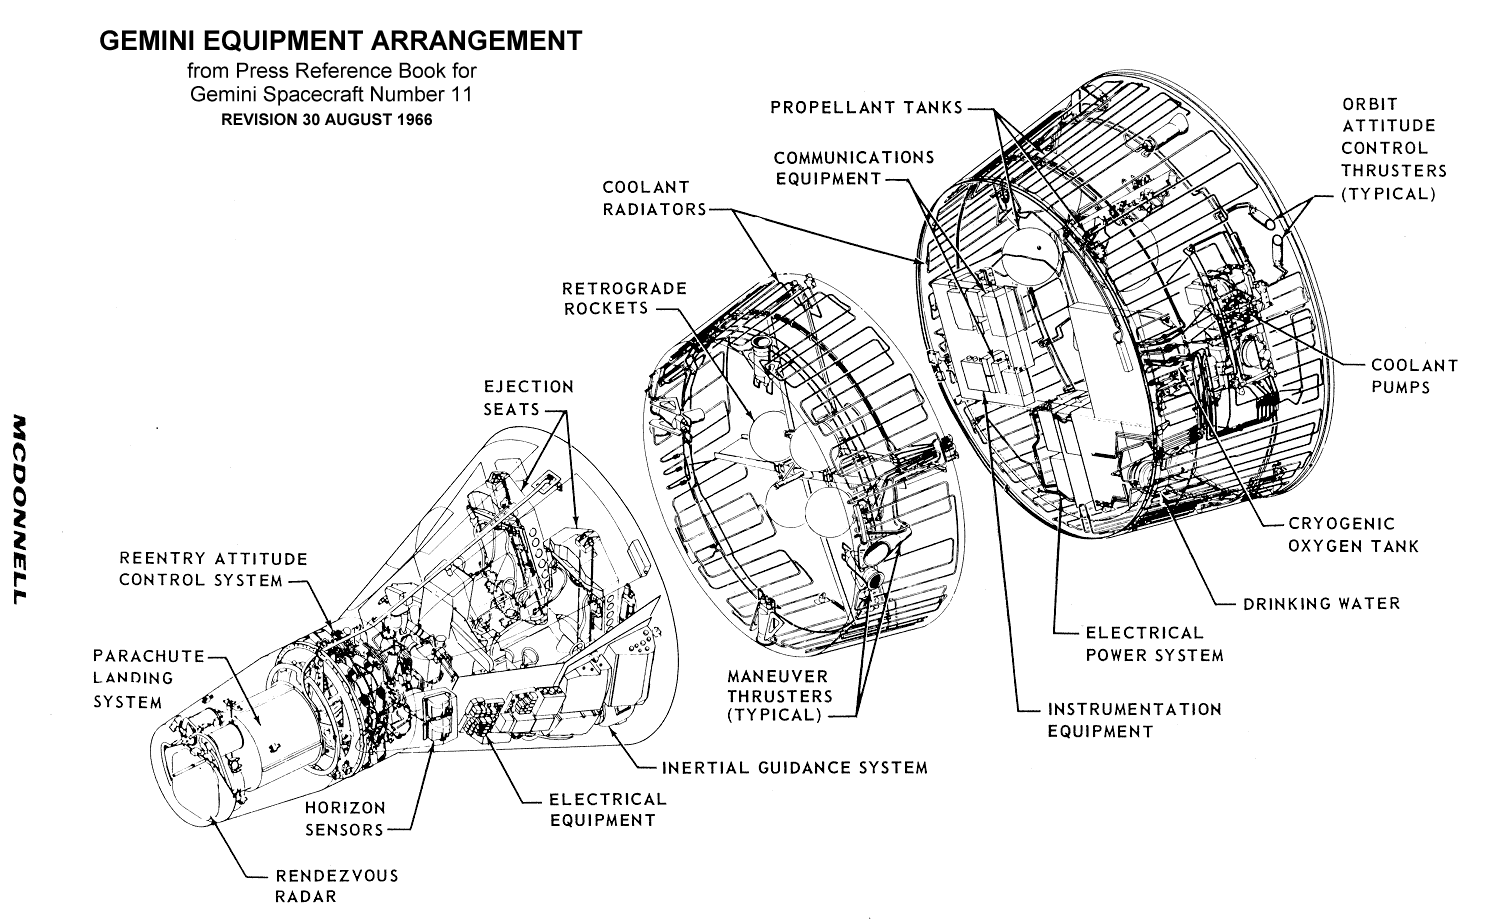 File Gemini Spacecraft Equipment Arrangement Png